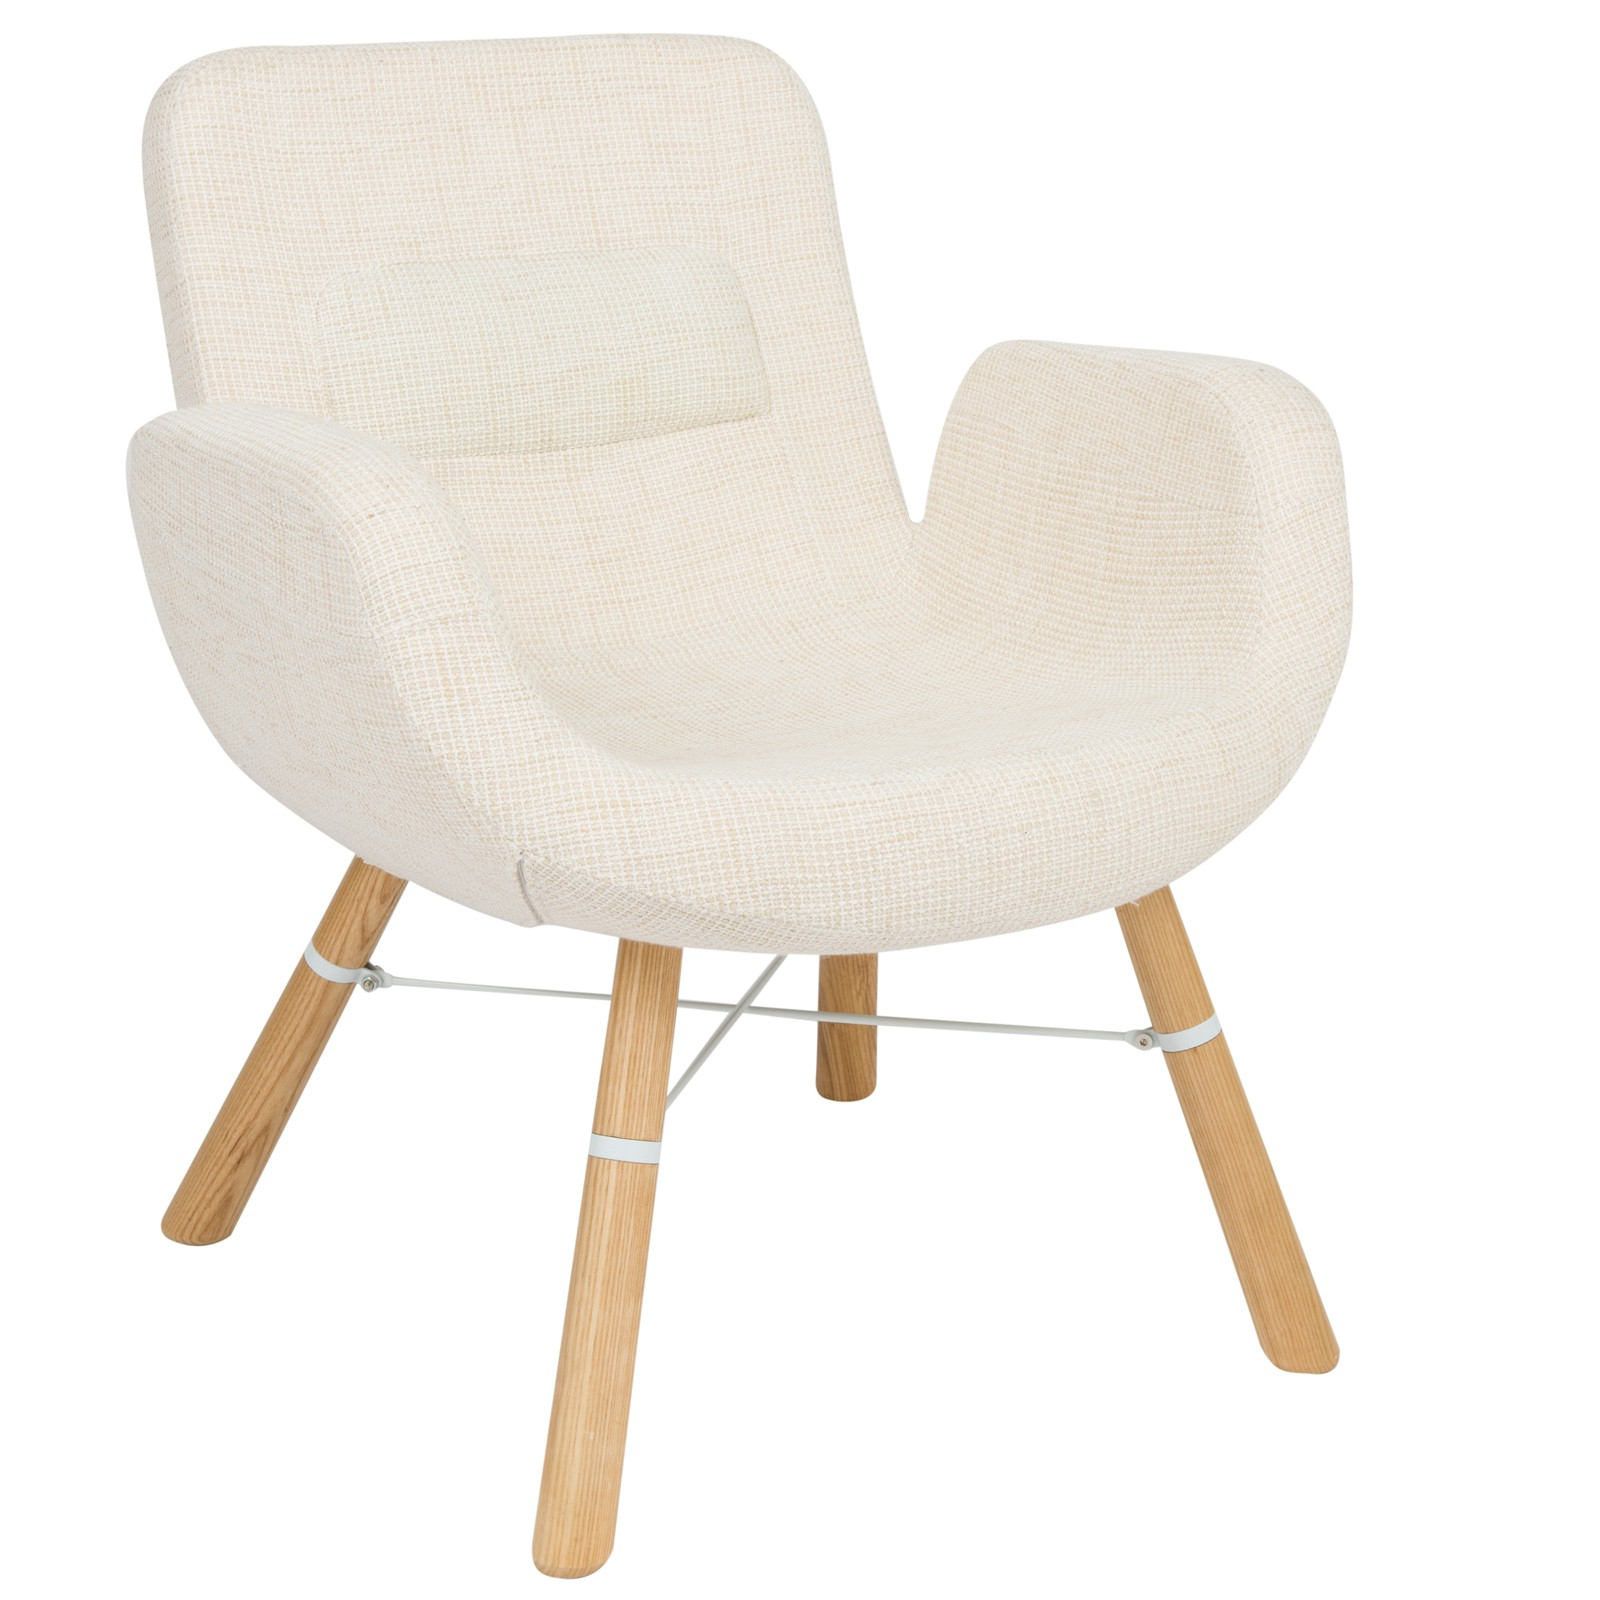 Inspiration about Milwood Accent Chair W/ Dowel Legs In Beige – Chairs With Regard To Twill Fabric Beige Rocking Chairs With Eiffel Legs (#20 of 20)